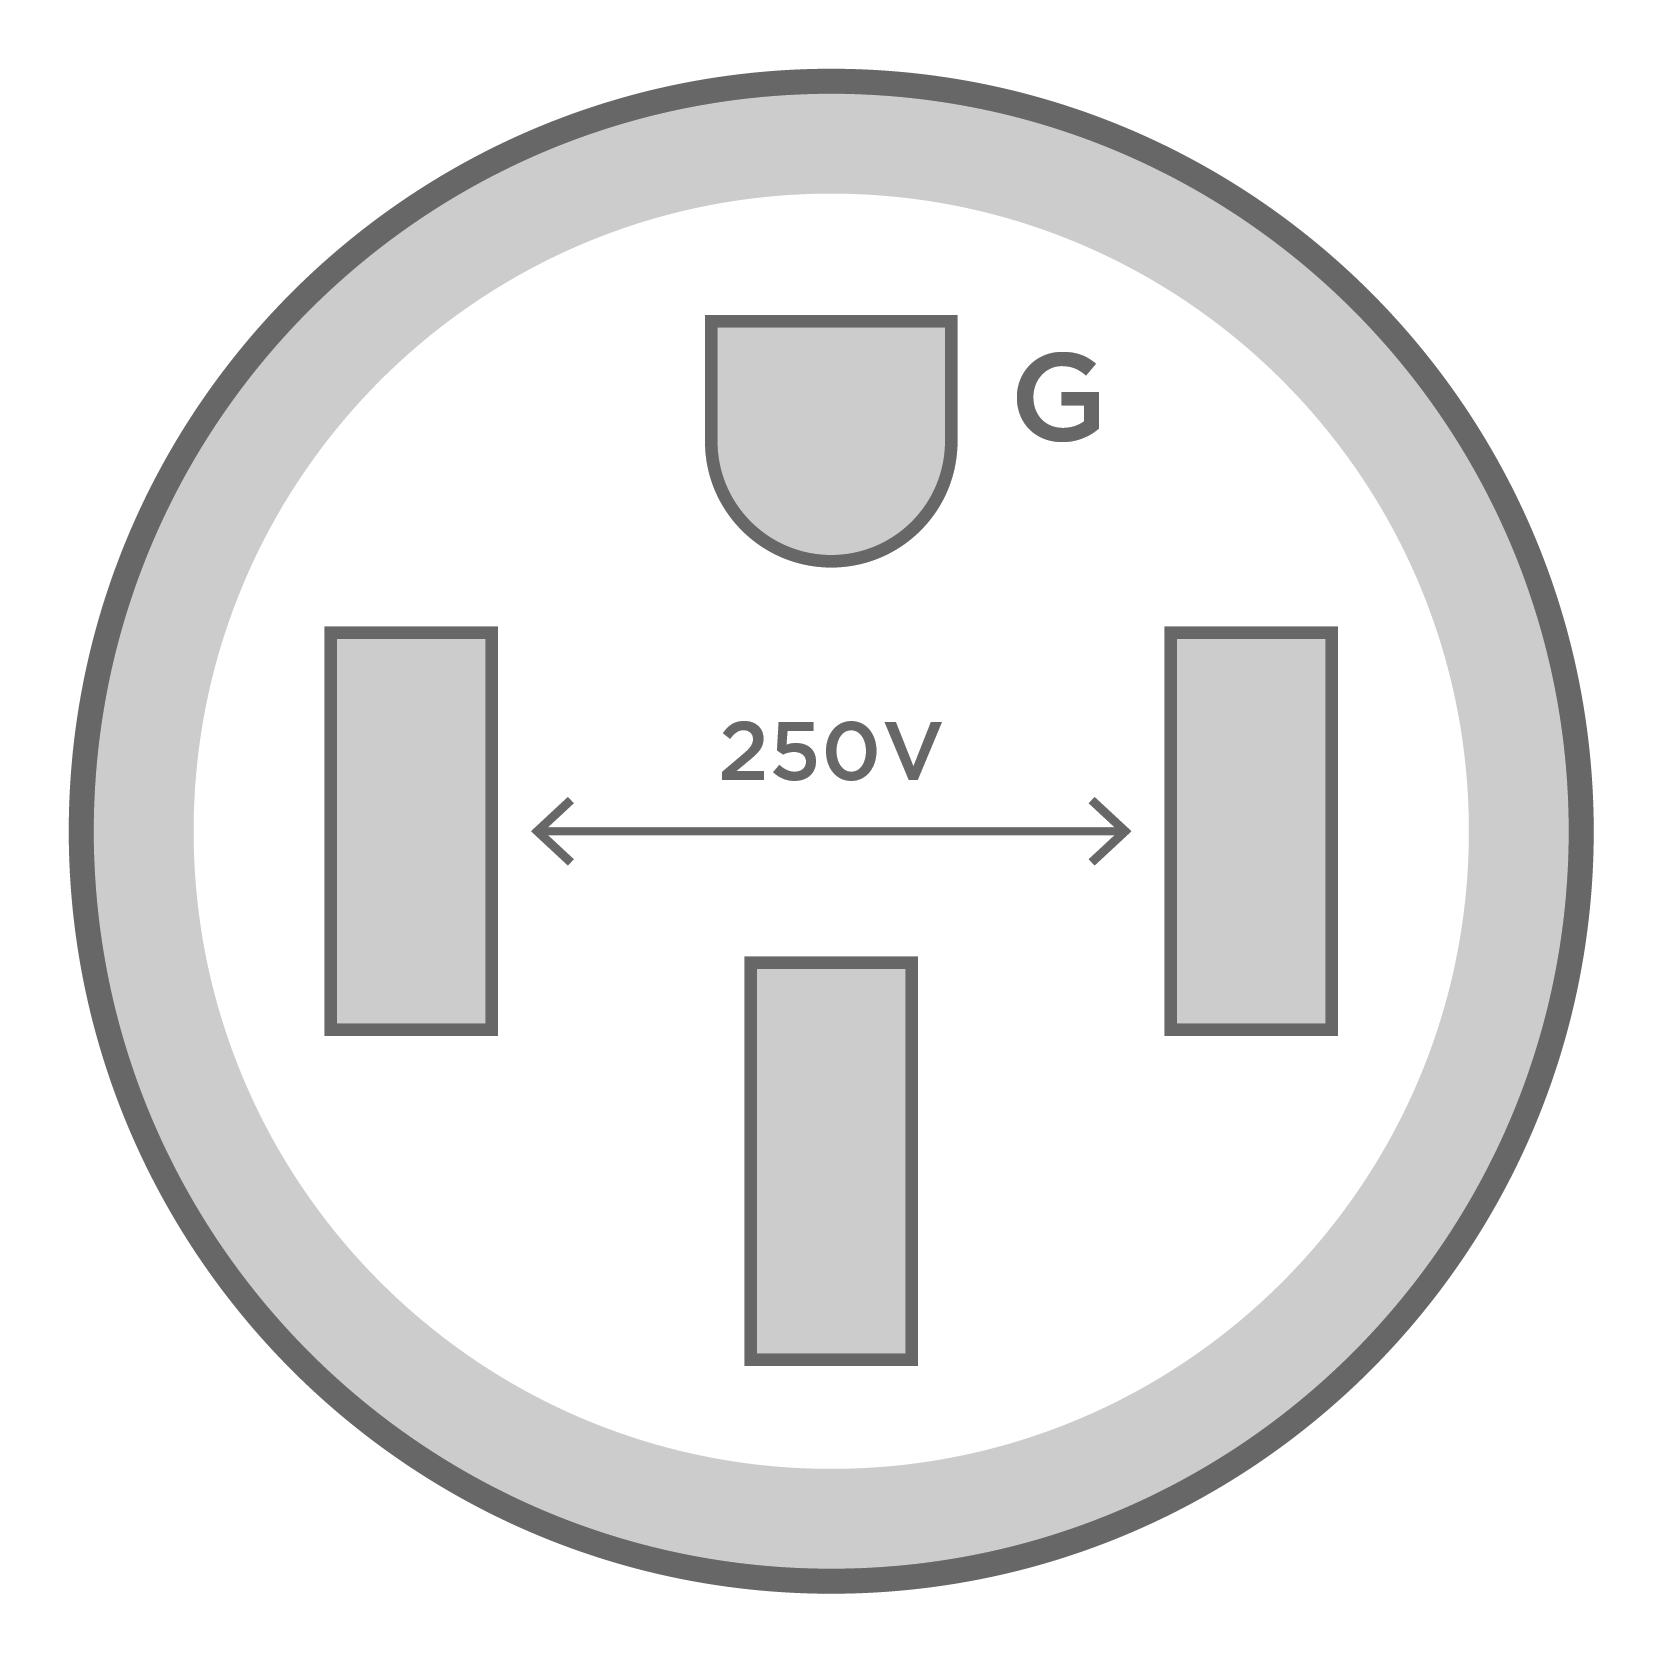 240 volt / 50 amp breaker (outlet installation guide) the most common 240  volt outlet for tesla charging, four wire configuration